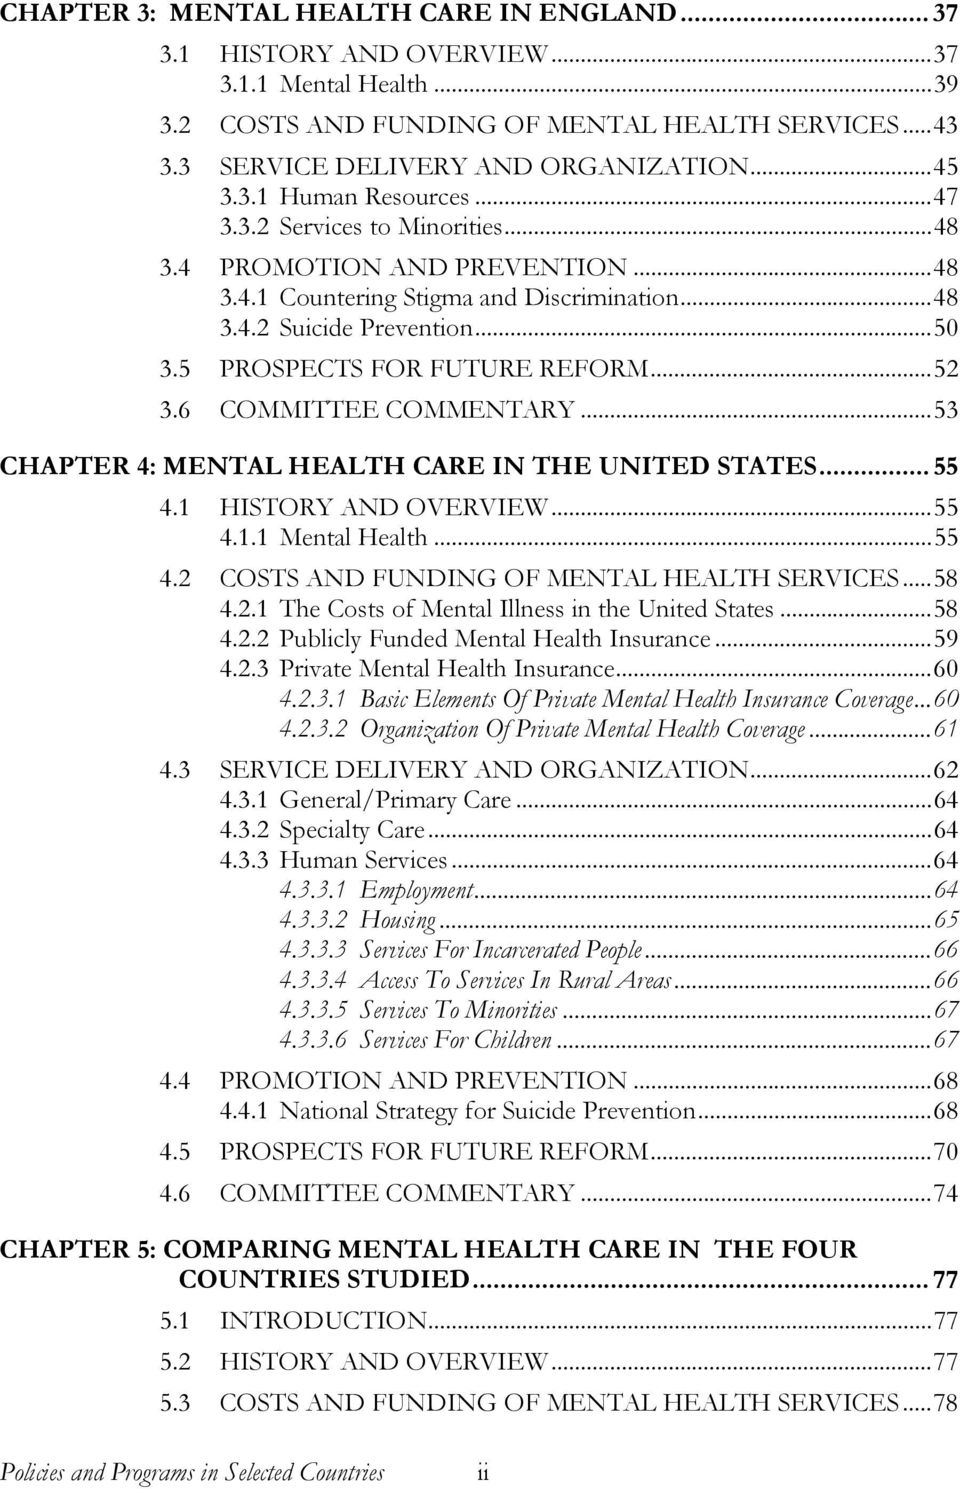 5 PROSPECTS FOR FUTURE REFORM...52 3.6 COMMITTEE COMMENTARY...53 CHAPTER 4: MENTAL HEALTH CARE IN THE UNITED STATES... 55 4.1 HISTORY AND OVERVIEW...55 4.1.1 Mental Health...55 4.2 COSTS AND FUNDING OF MENTAL HEALTH SERVICES.